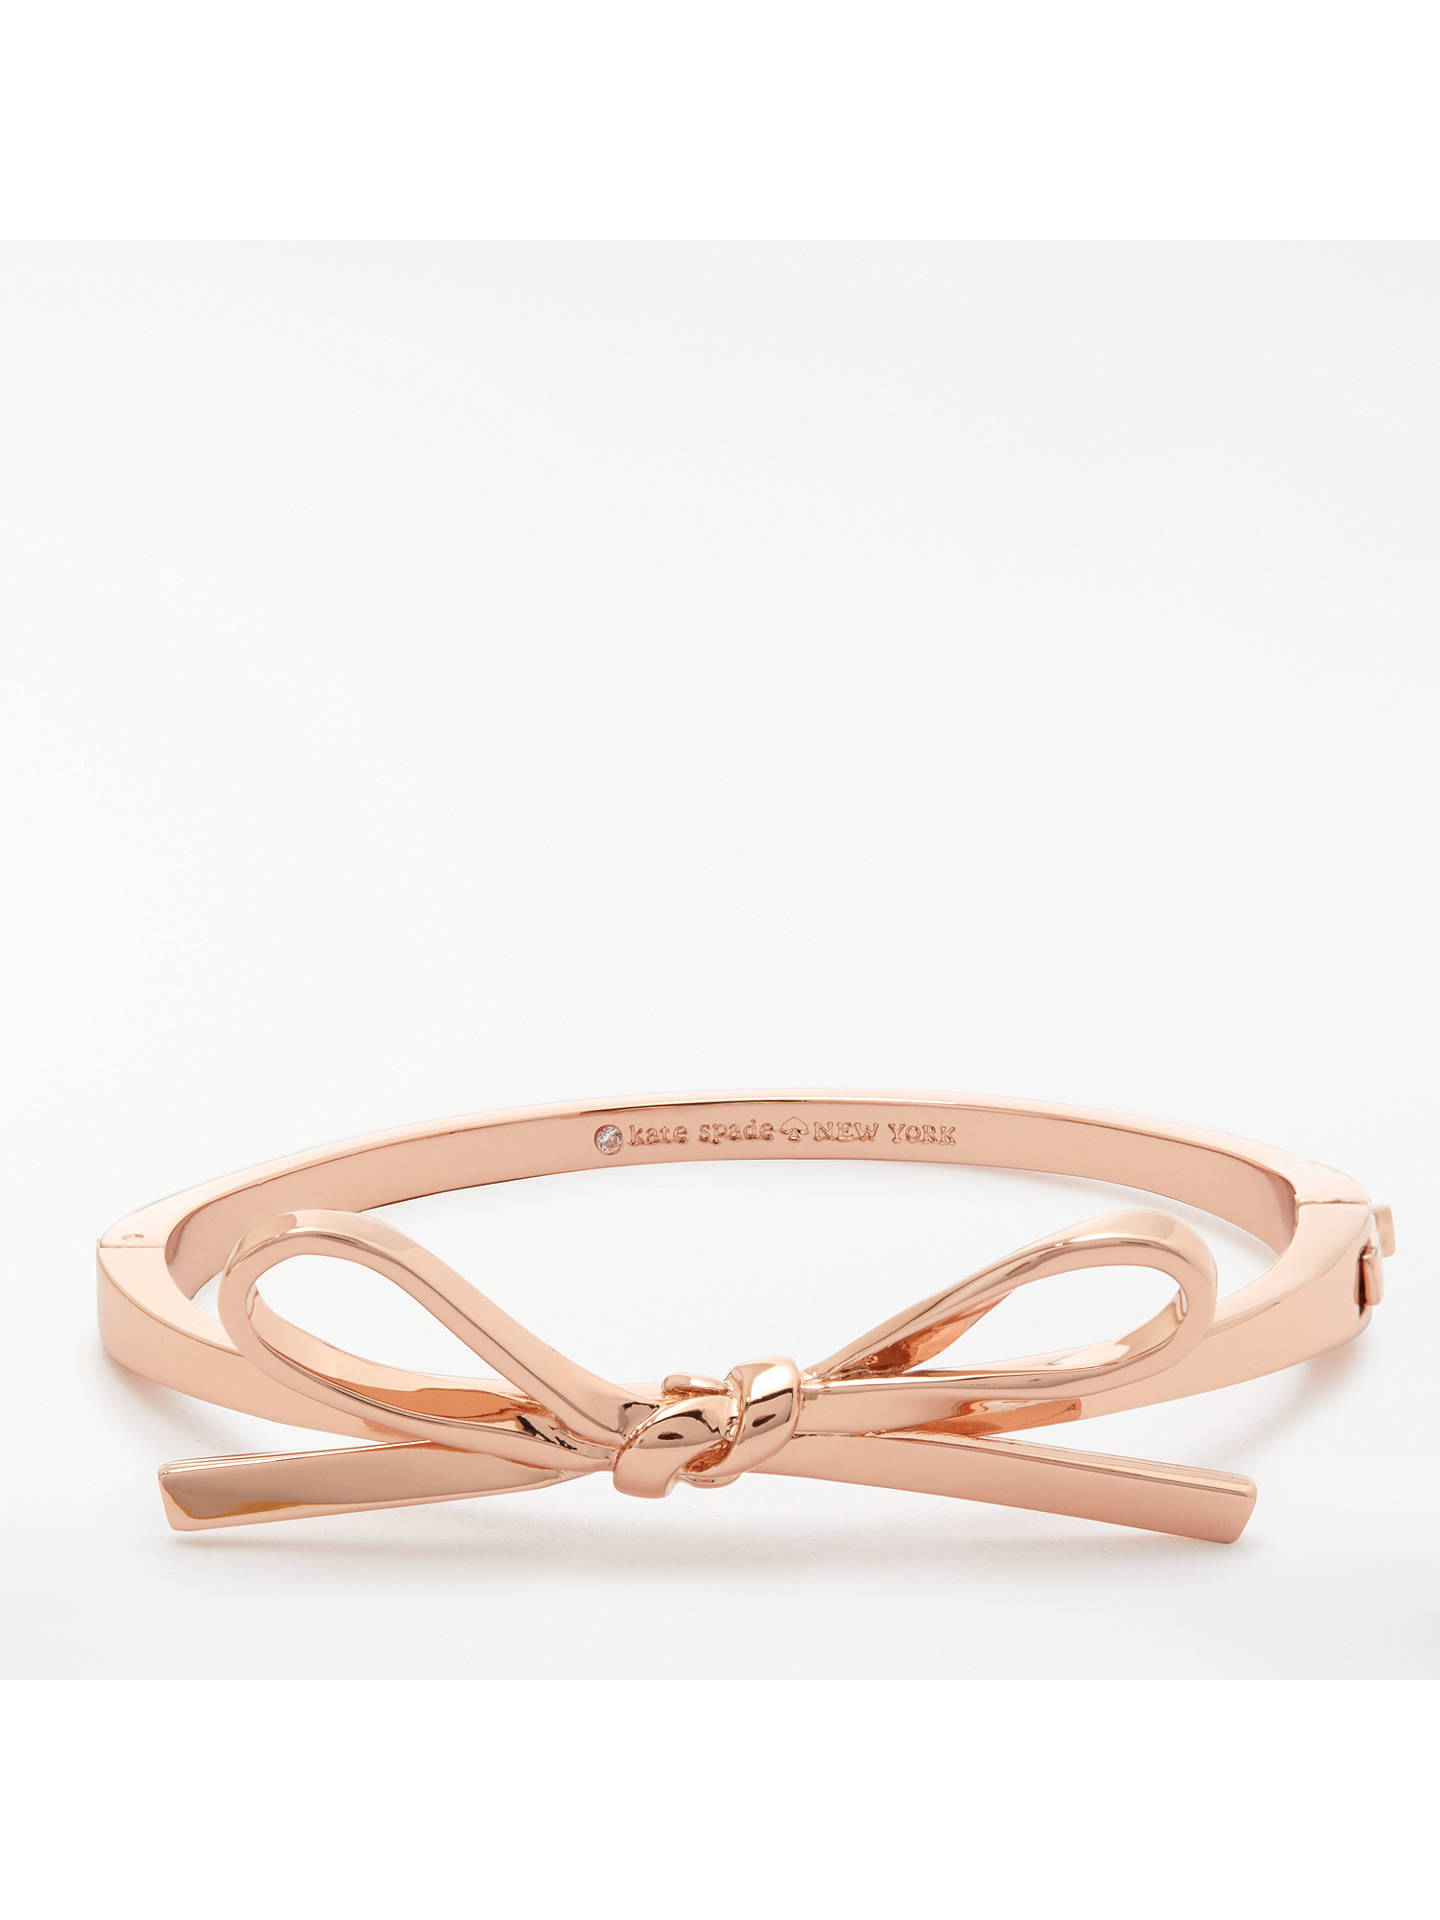 aade7401e87e Buy kate spade new york Bow Bangle, Rose Gold Online at johnlewis.com ...